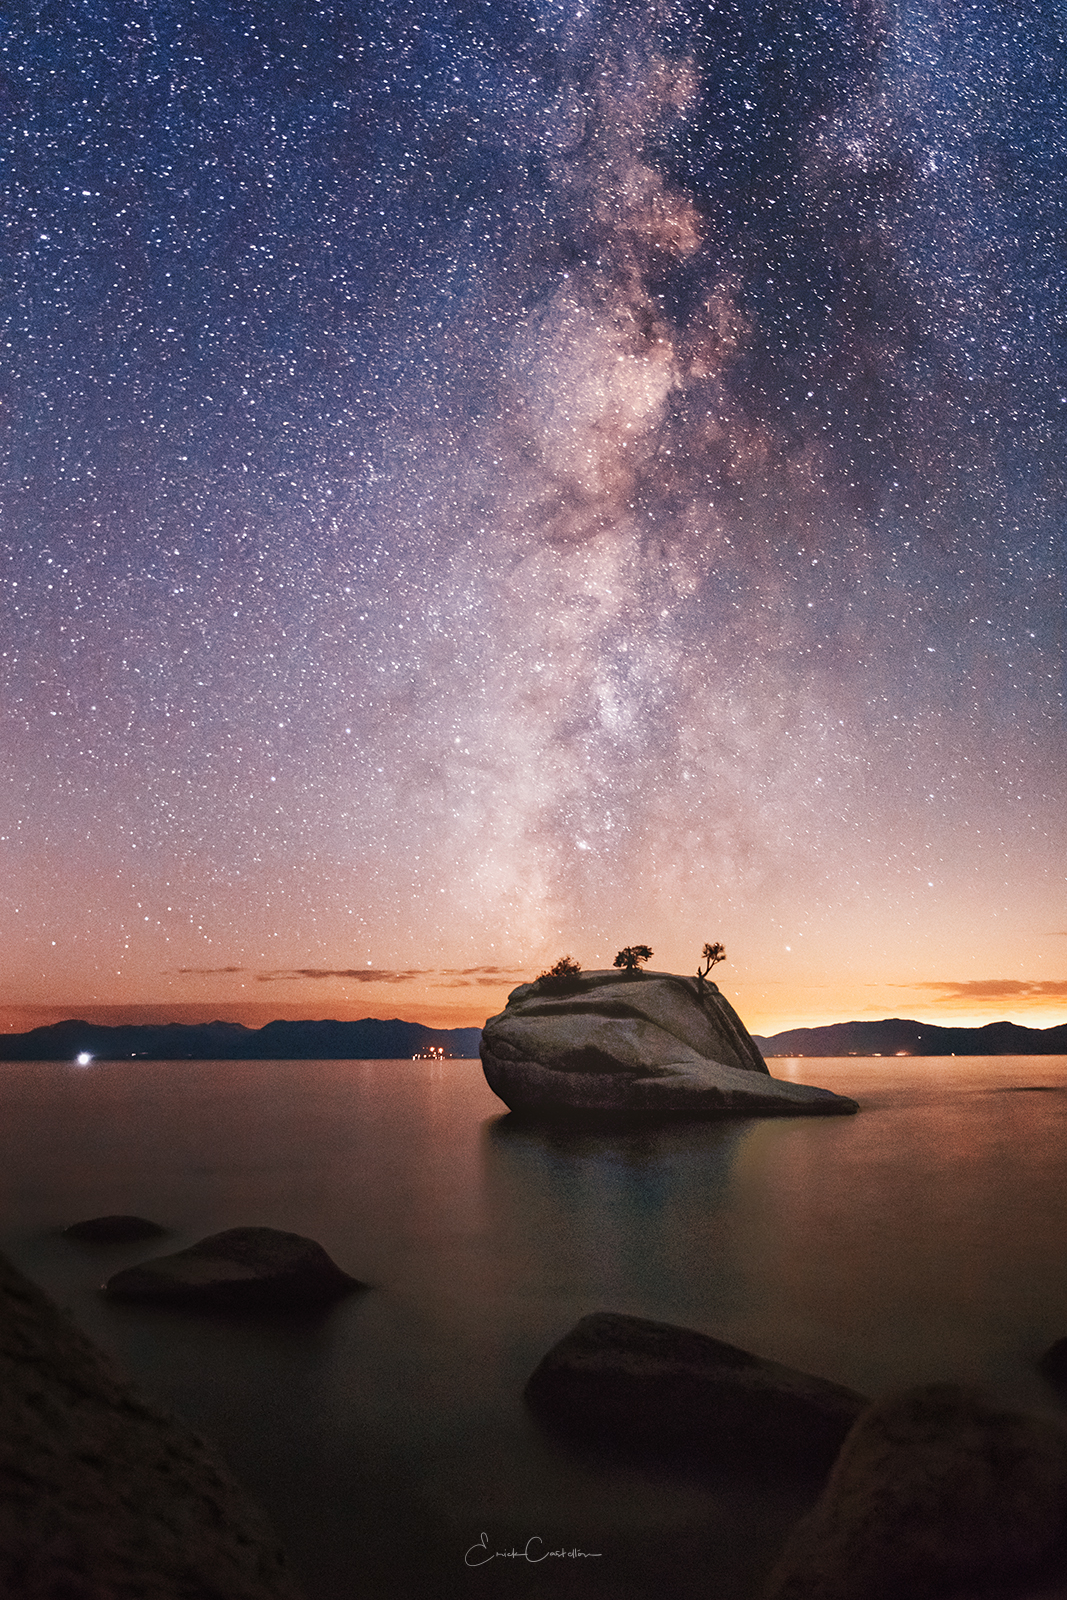 The Rock under the Stars